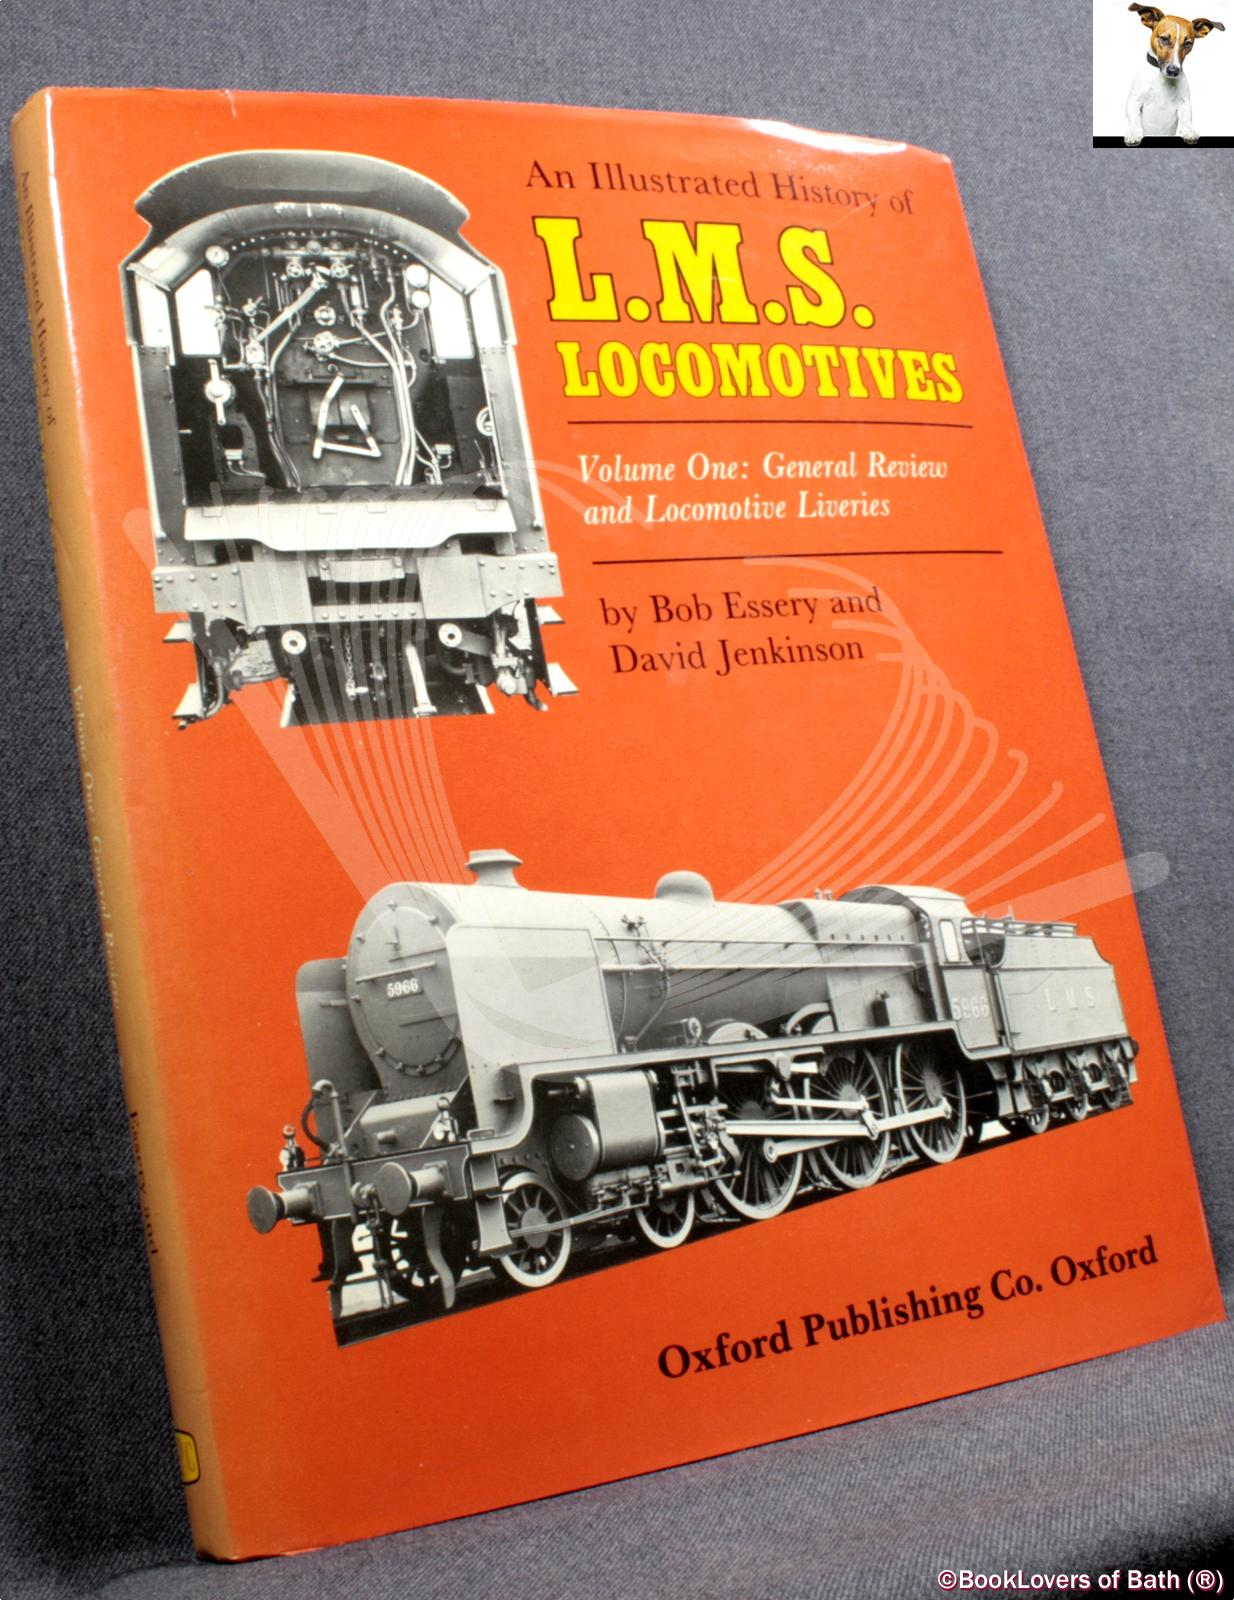 An Illustrated History of LMS Locomotives Volume One: General Review and Locomotive Liveries - Bob Essery & David Jenkinson